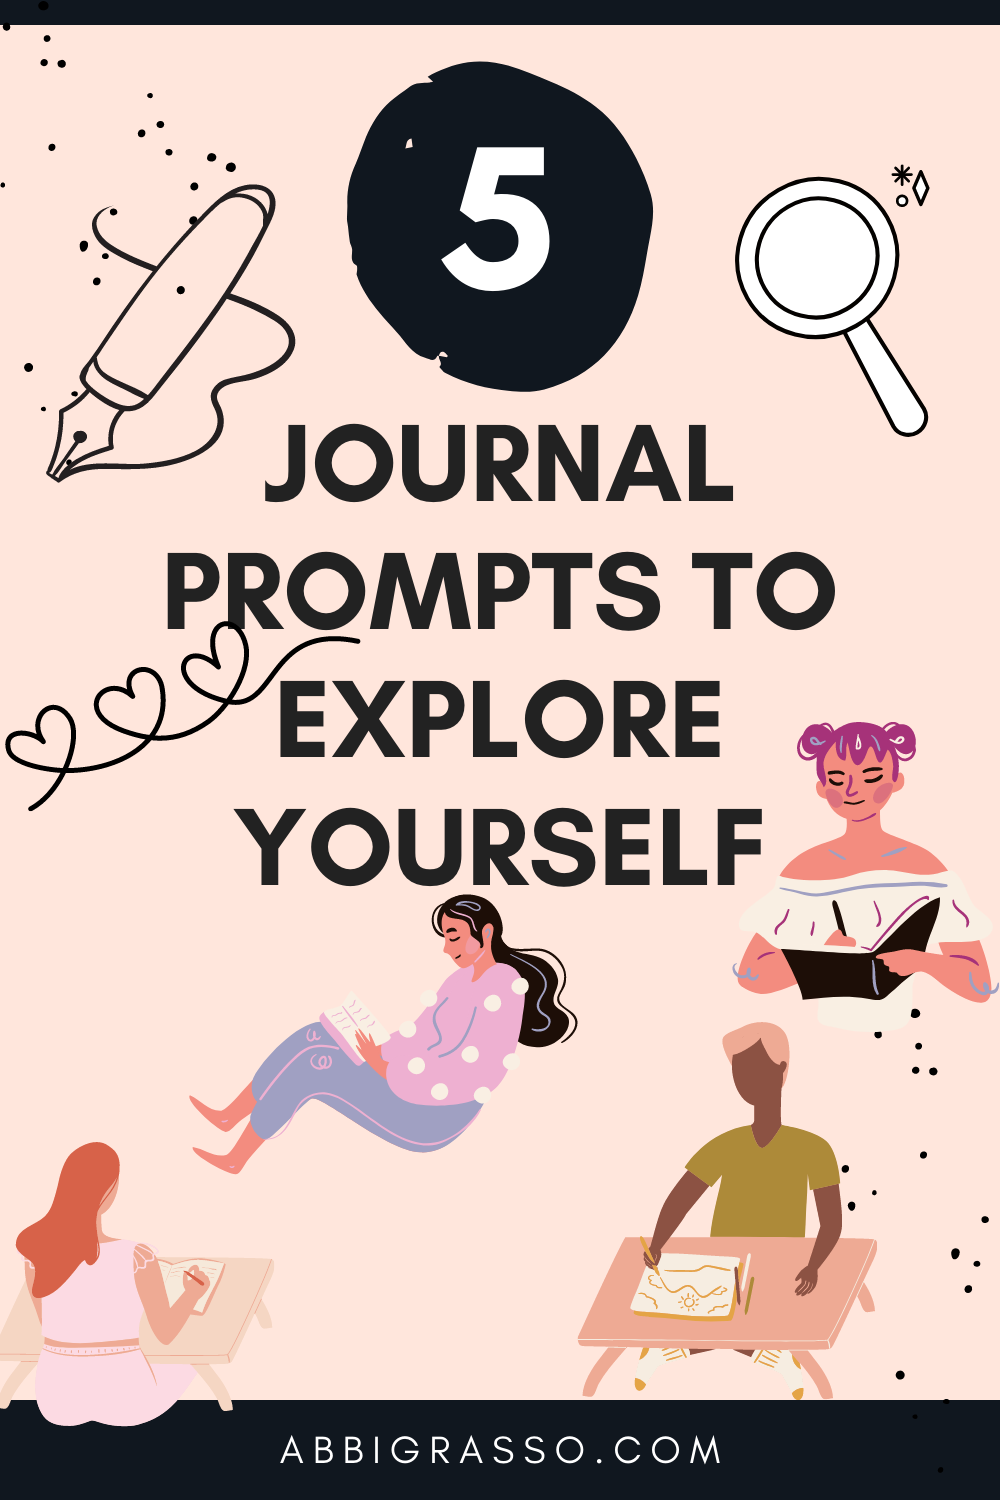 Daily Blog #283- Journal Prompts to explore yourself